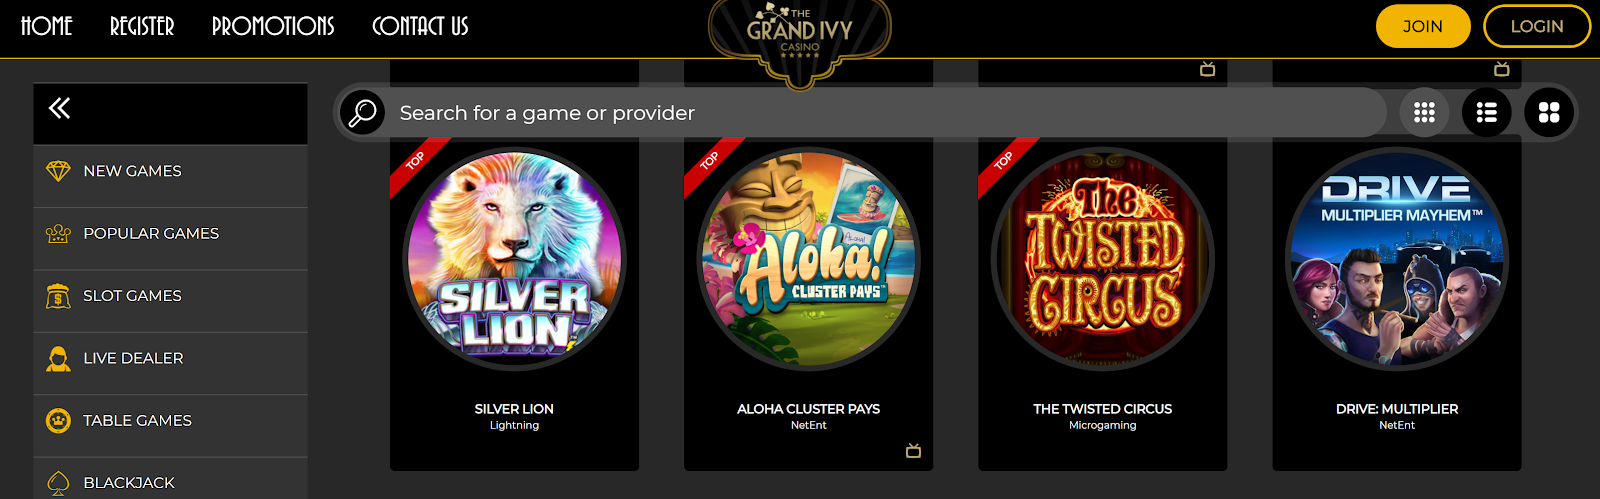 The Grand Ivy Casino is a top-rated slot bonus site